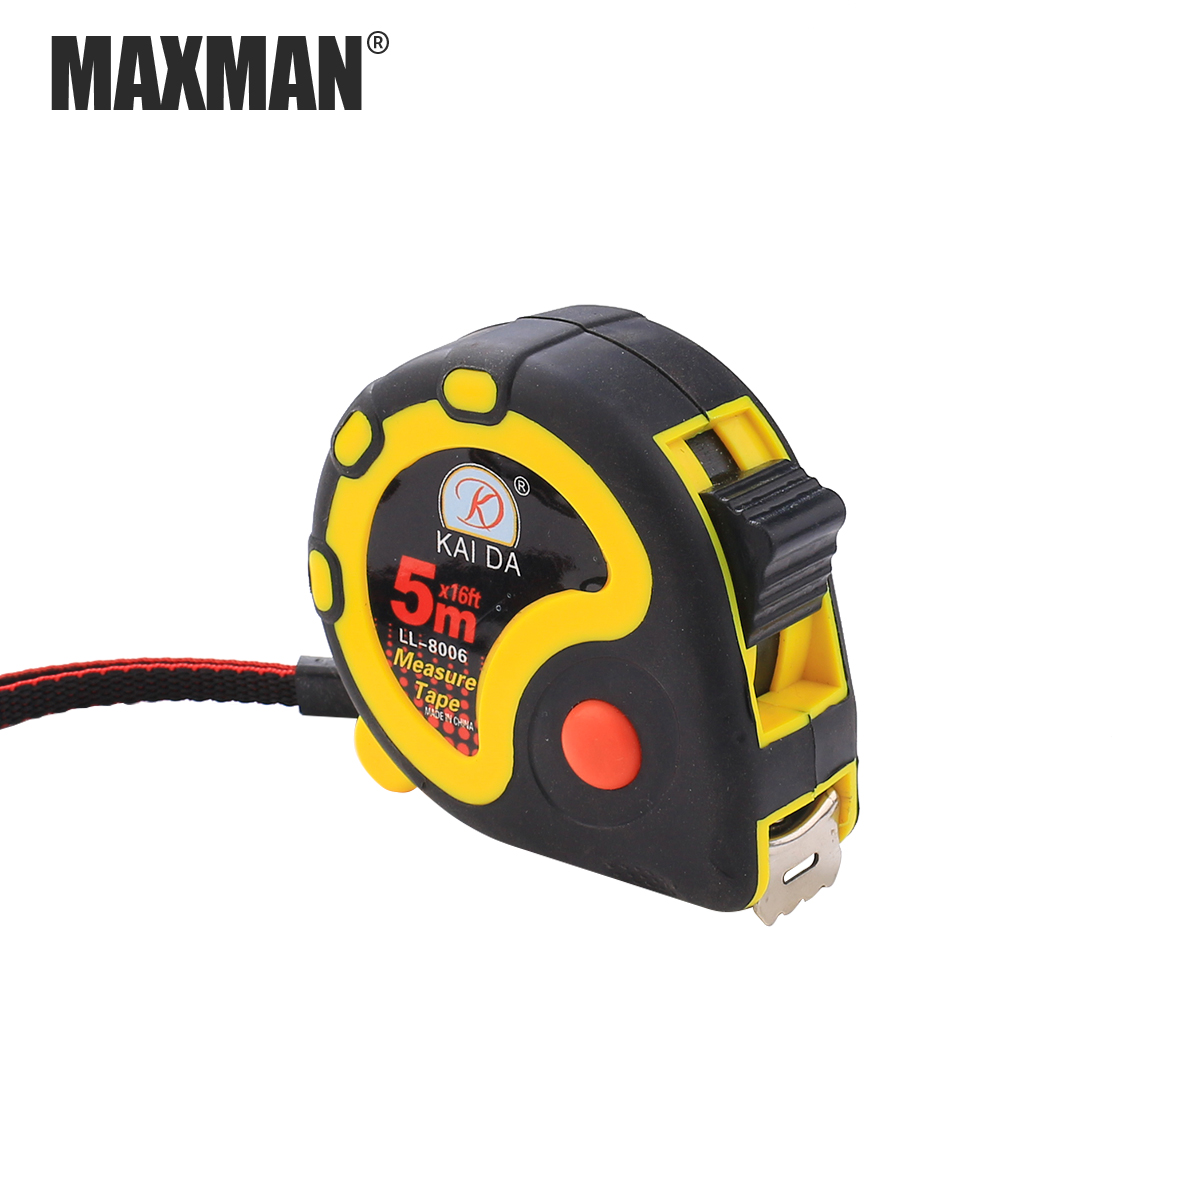 MAXMAN 1PCS 5M 10M Plastic Tape Measure Inch And Metric system Household Ruler Home Decoration DIY Tools Woodworking Caliper